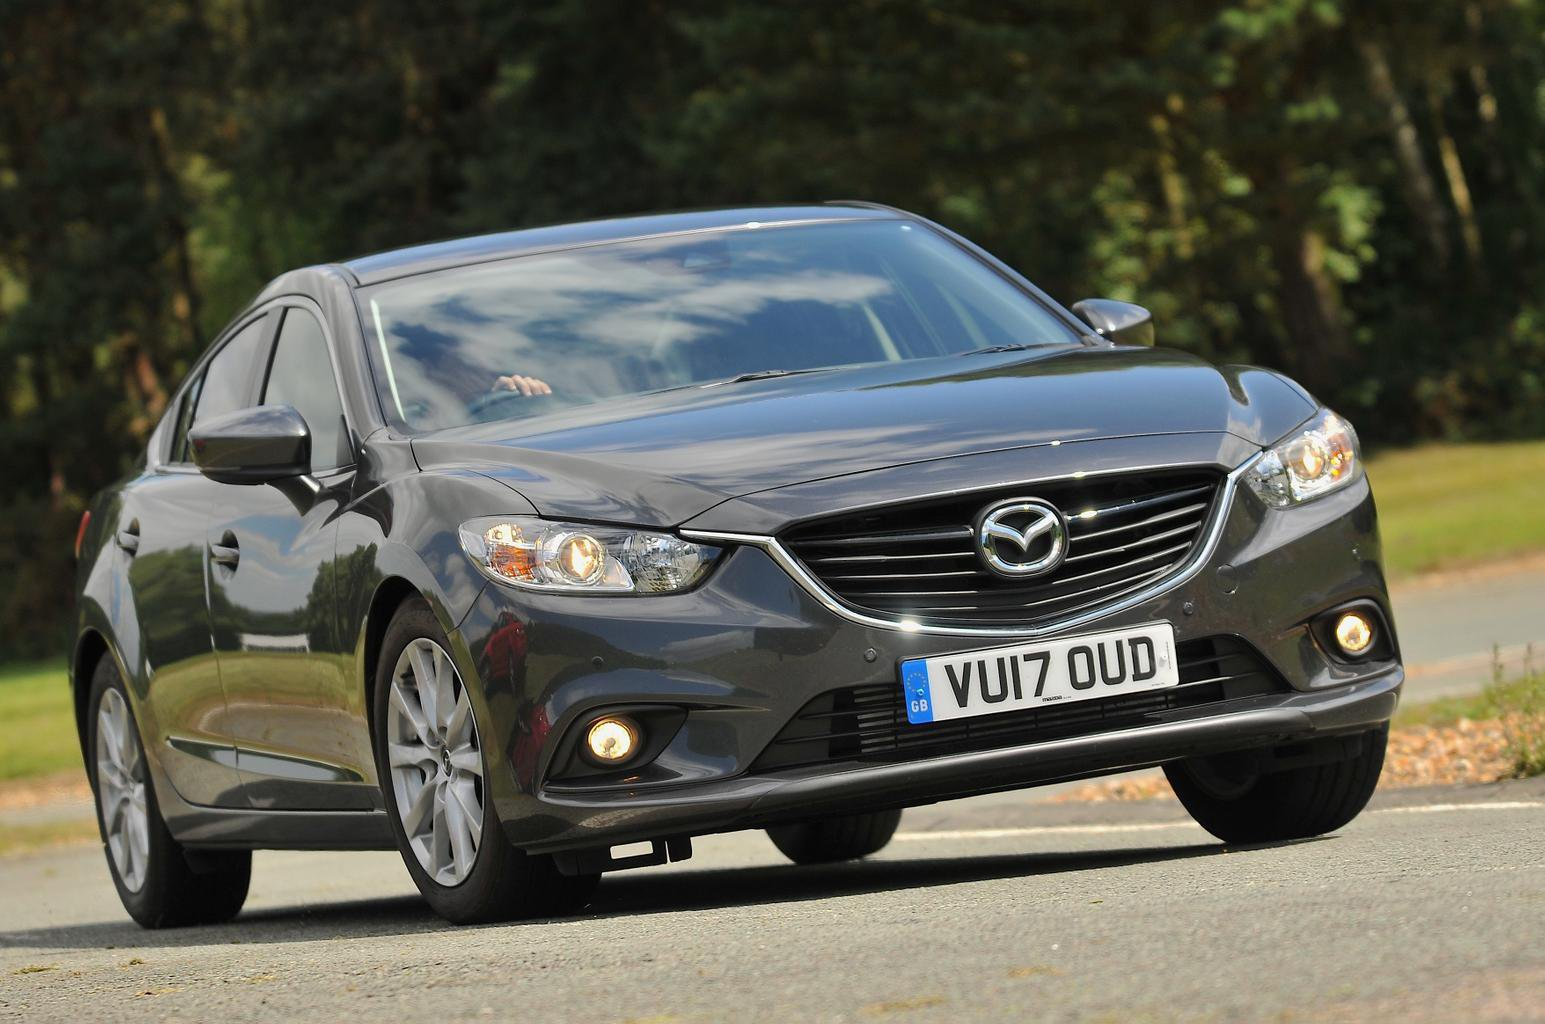 New Vauxhall Insignia Grand Sport vs Mazda 6 vs Skoda Superb